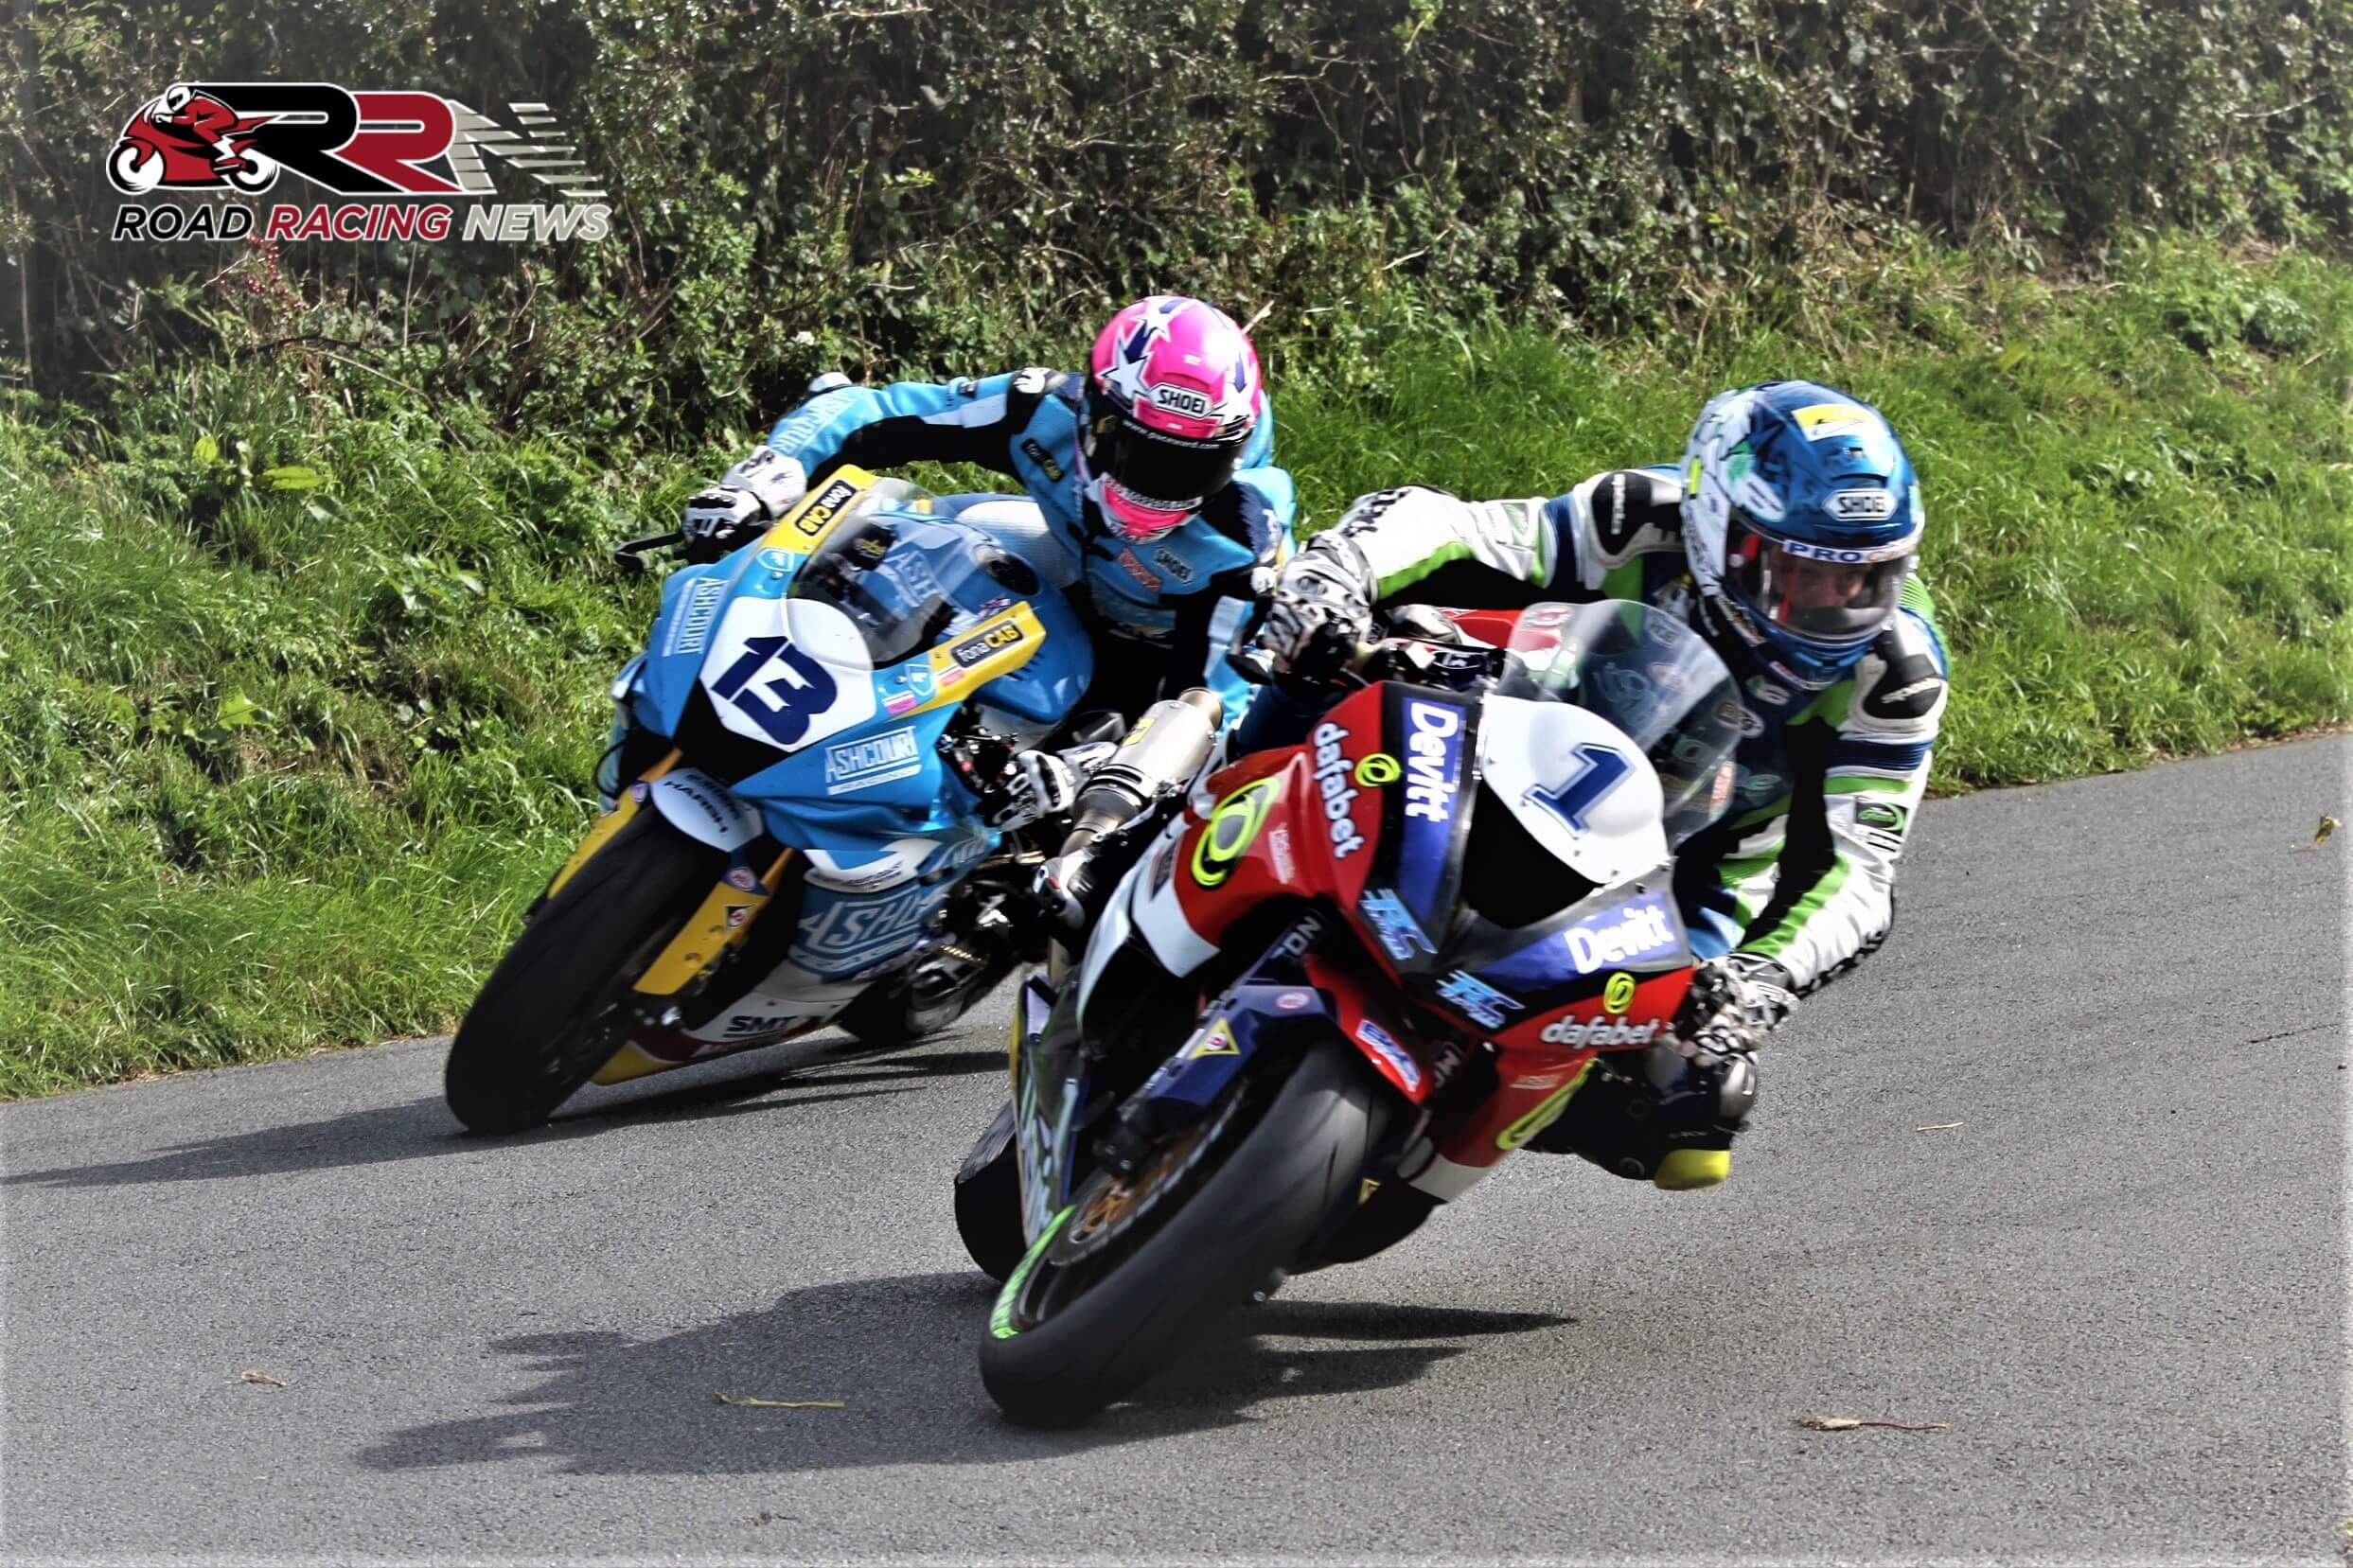 2020 Oliver's Mount Events: Stats/Facts Round Up